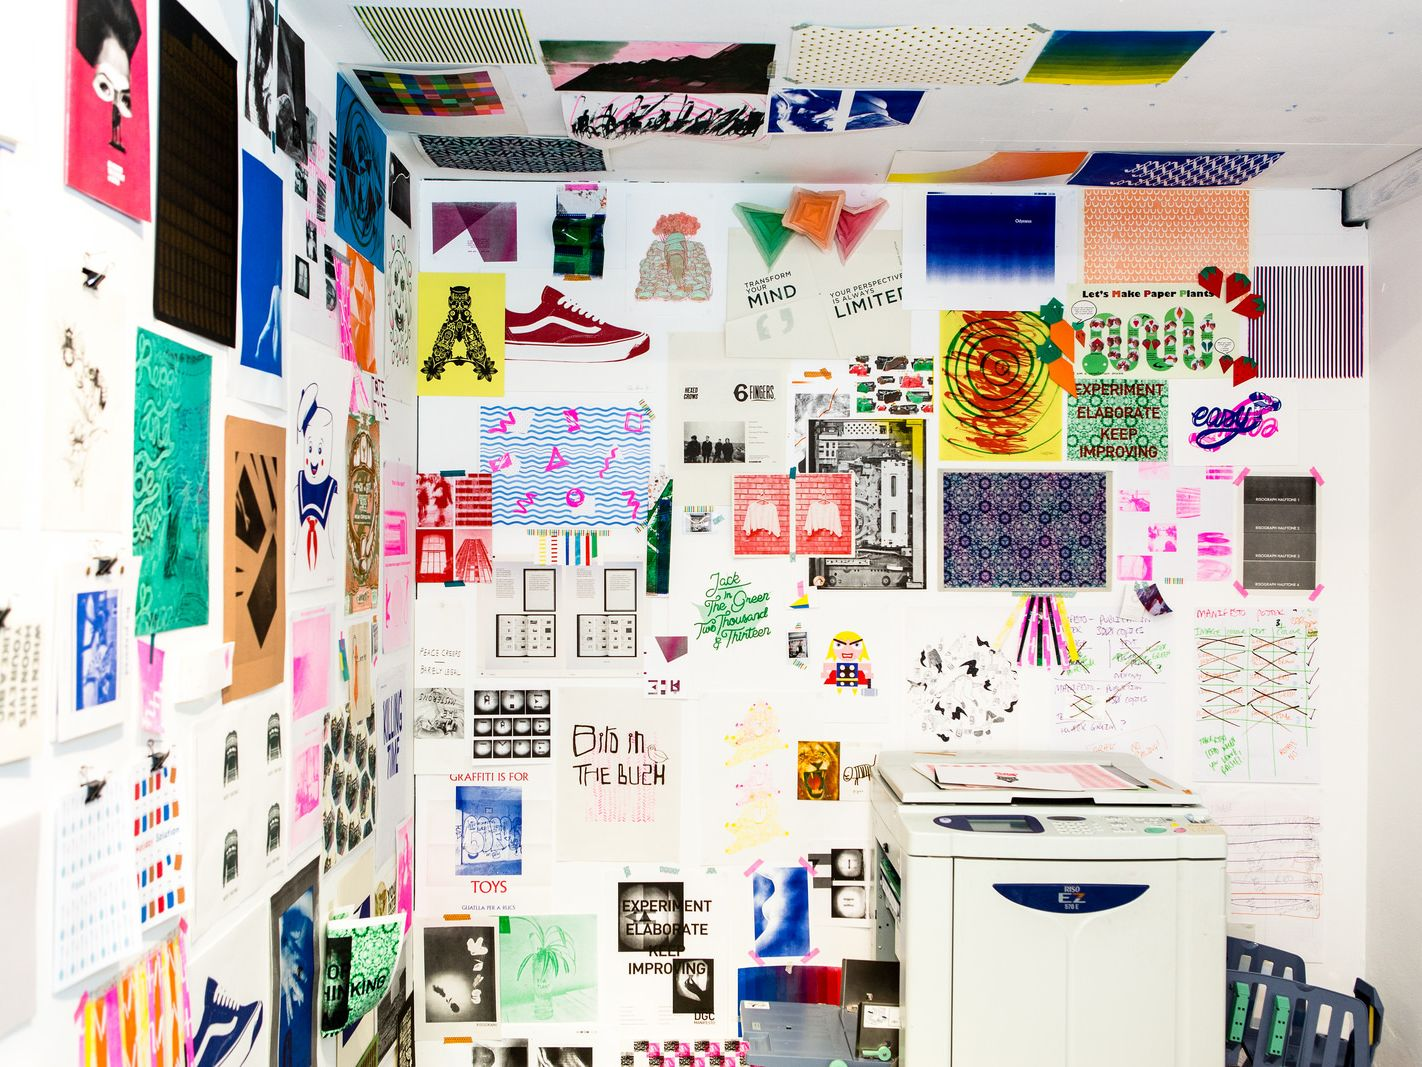 A shot of a corner of a white room full of colourful posters on the wall and ceiling, with a photocopier to the right